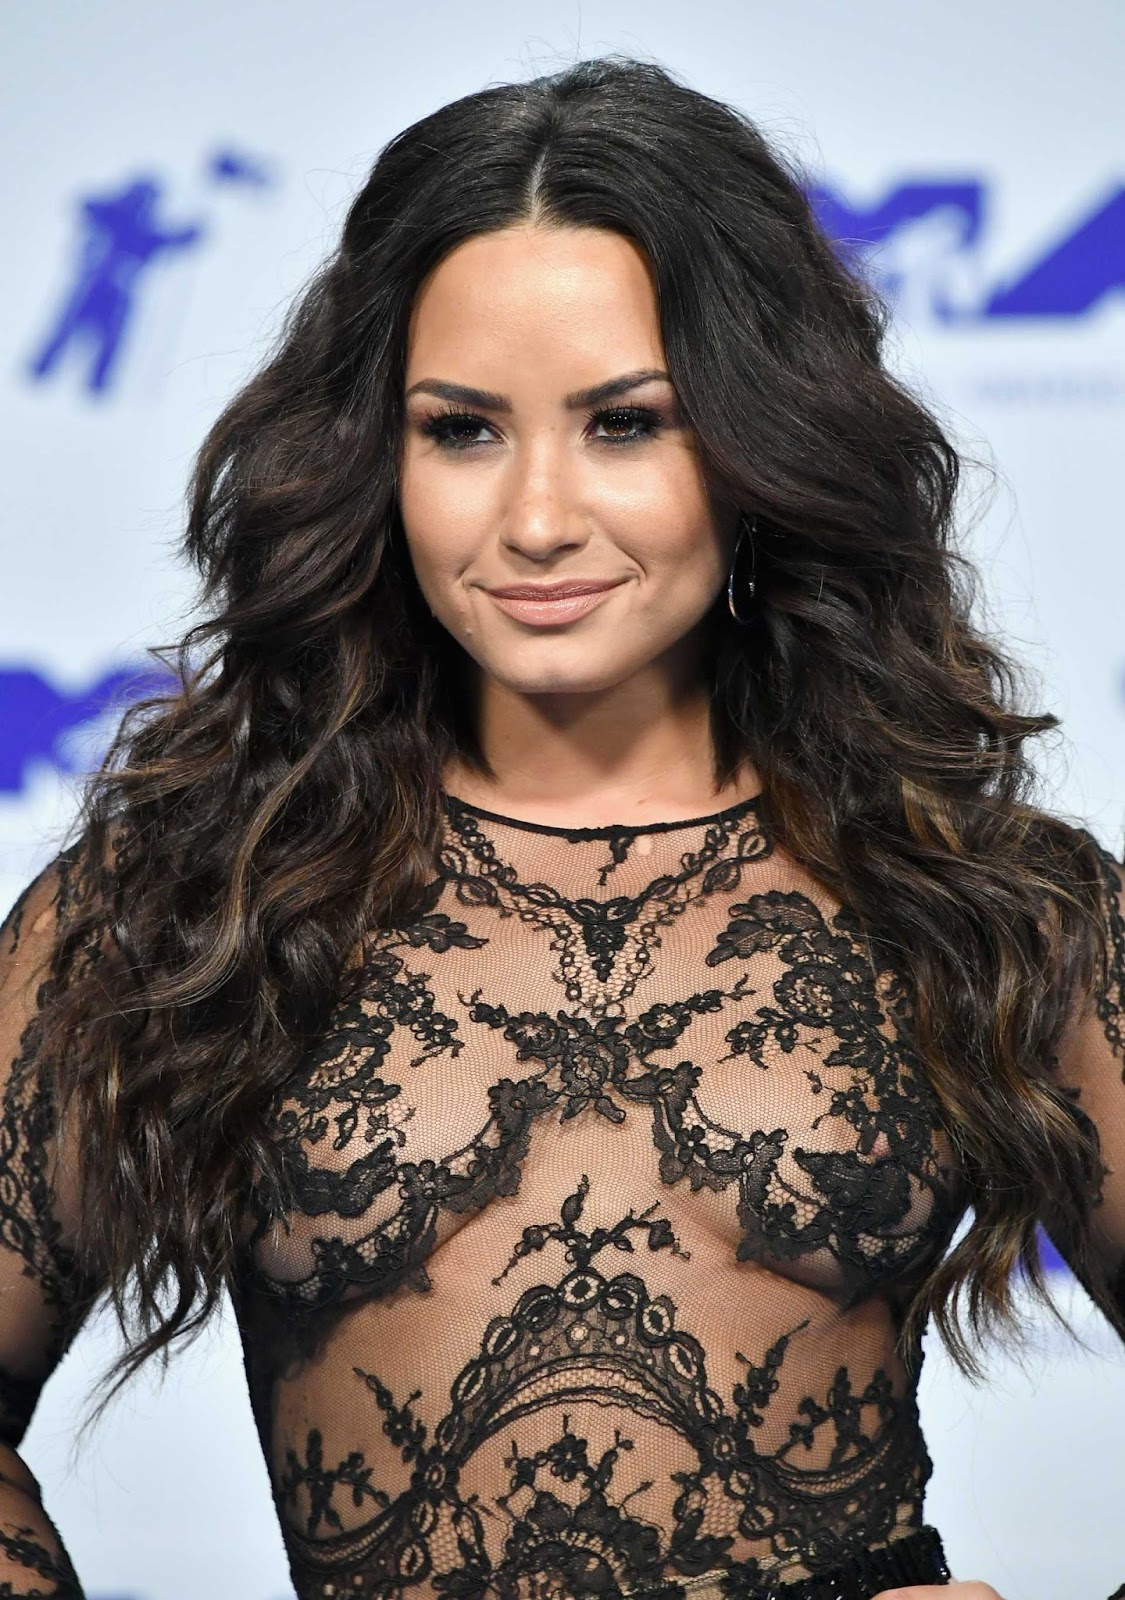 Demi Lovato Is Basically Topless at the MTV Video Music Awards